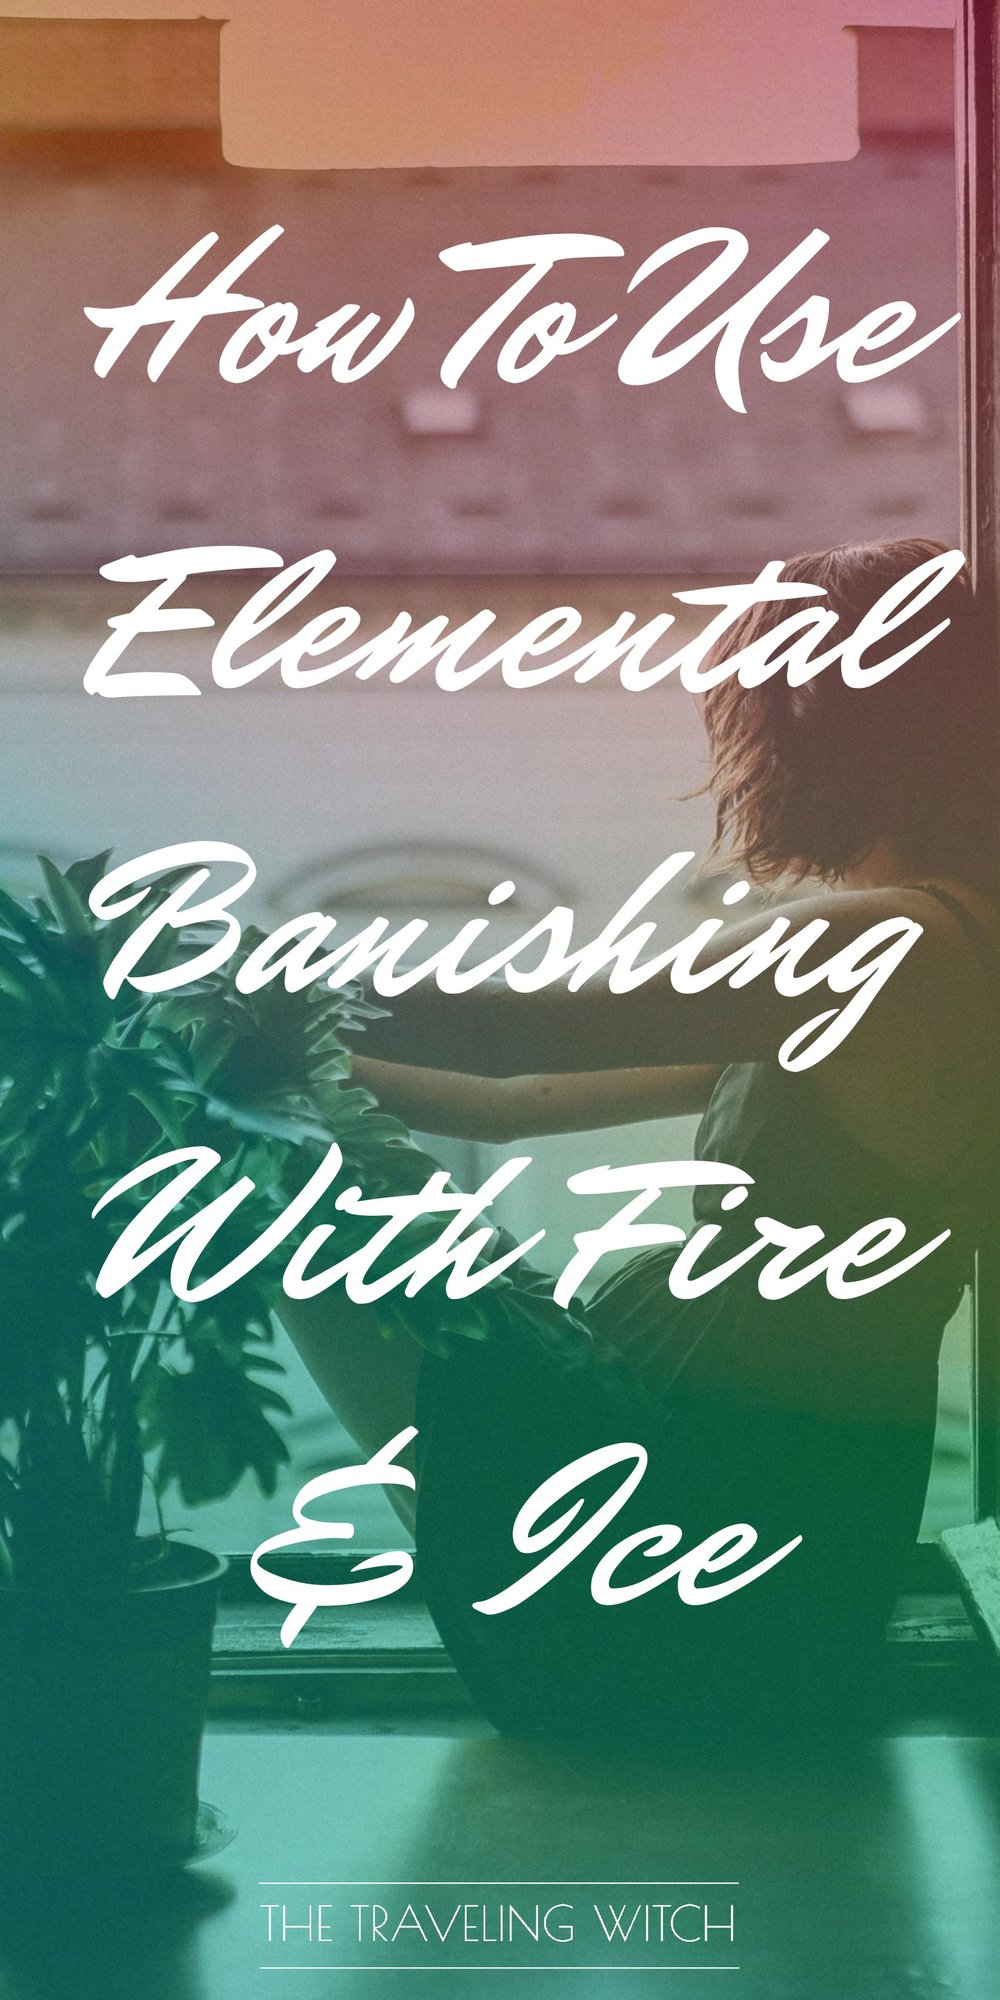 How To Use Elemental Banishing With Fire Ice // Witchcraft // Magic // The Traveling Witch